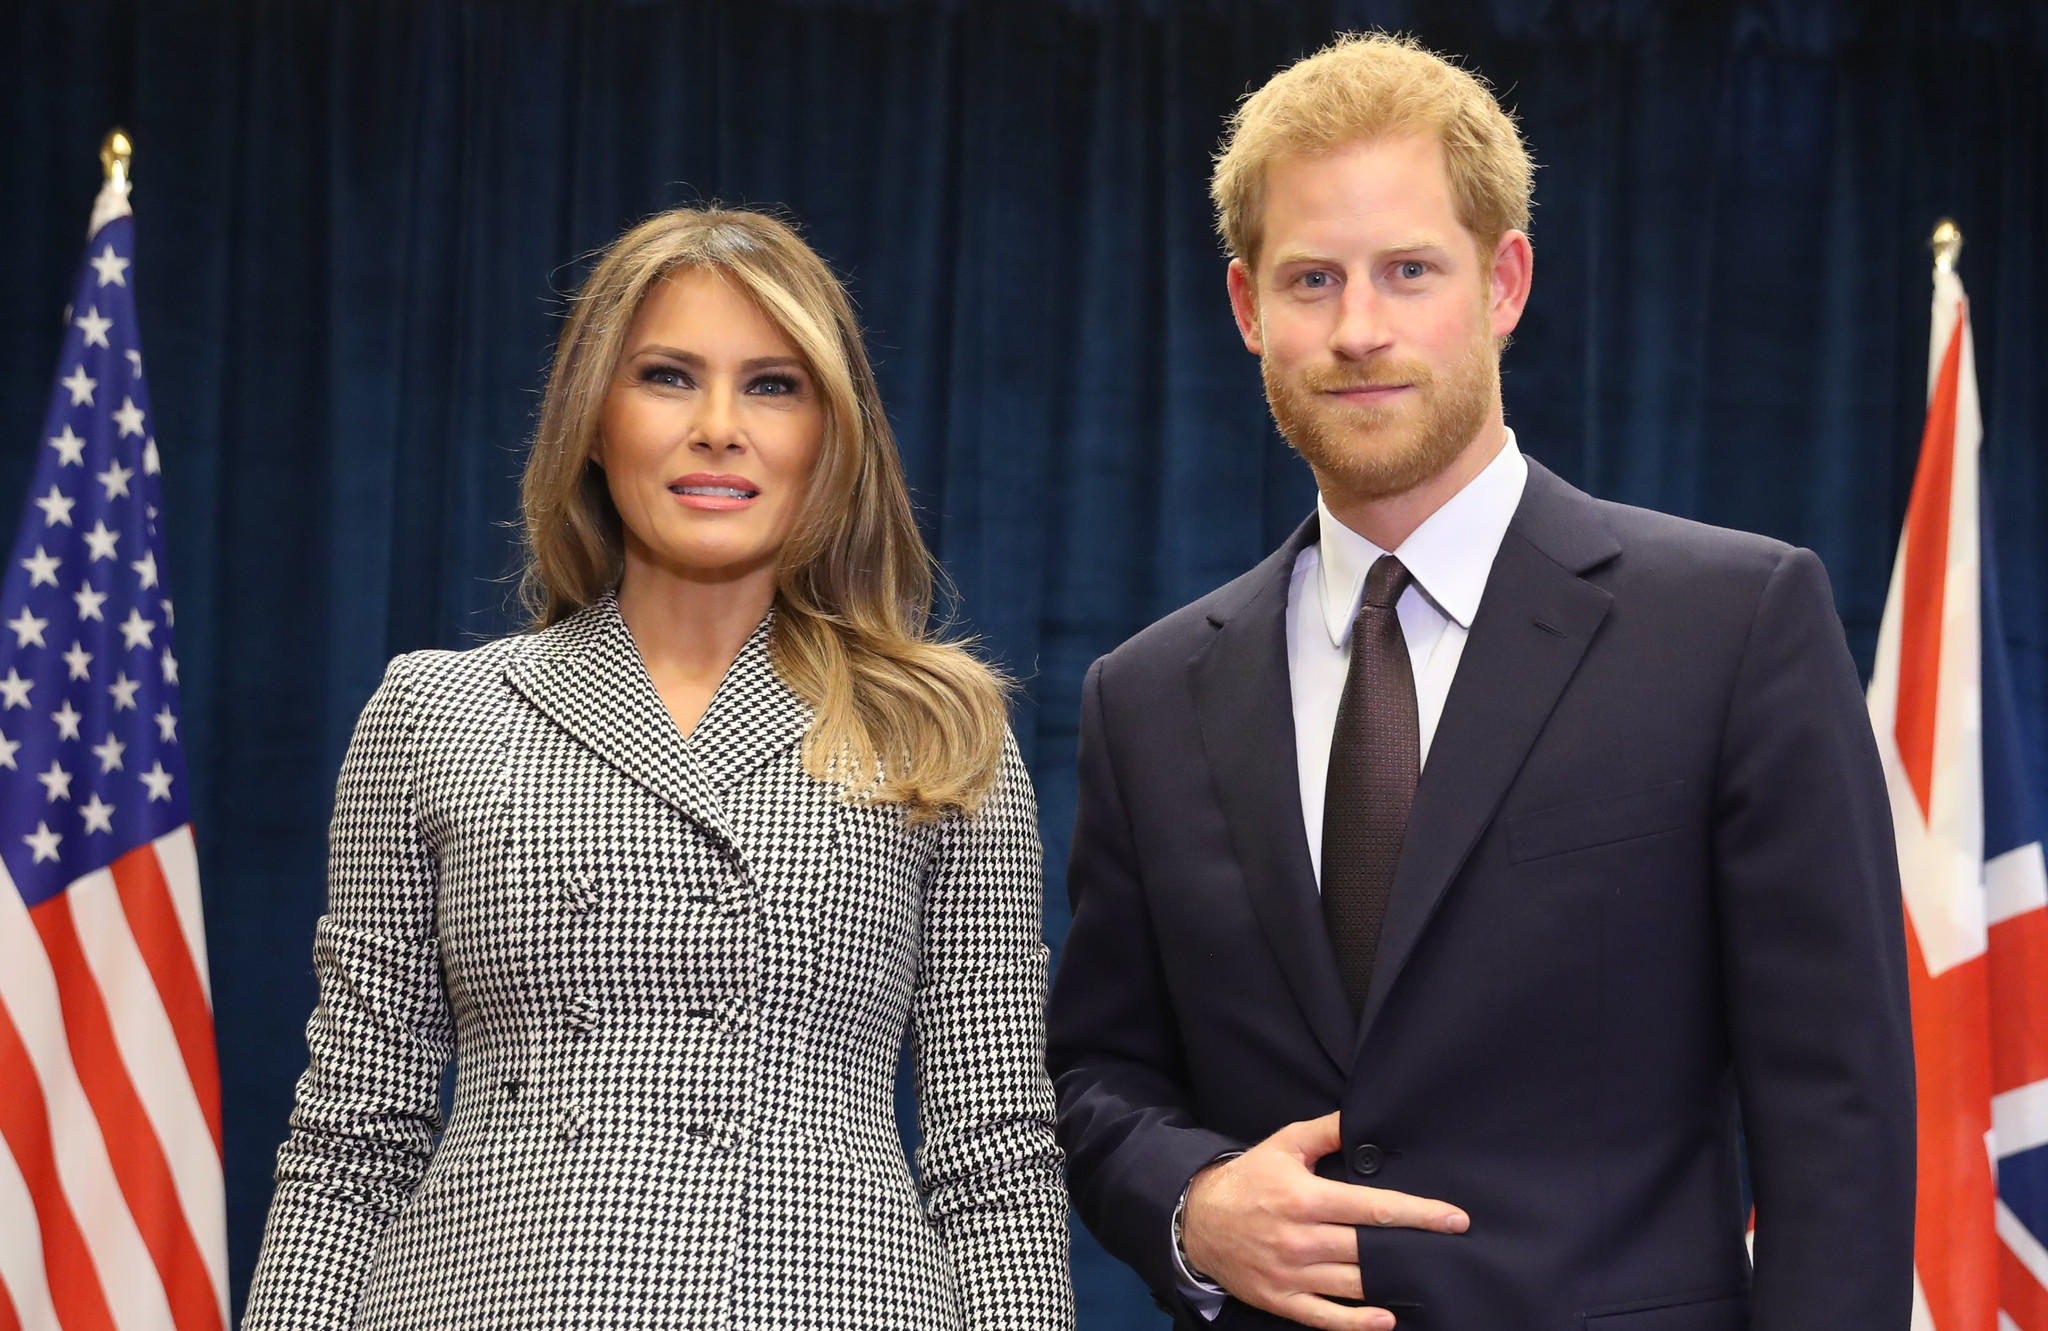 Melania Trump and Prince Harry. (Chris Jackson/Getty Images for the Invictus Games Foundation)